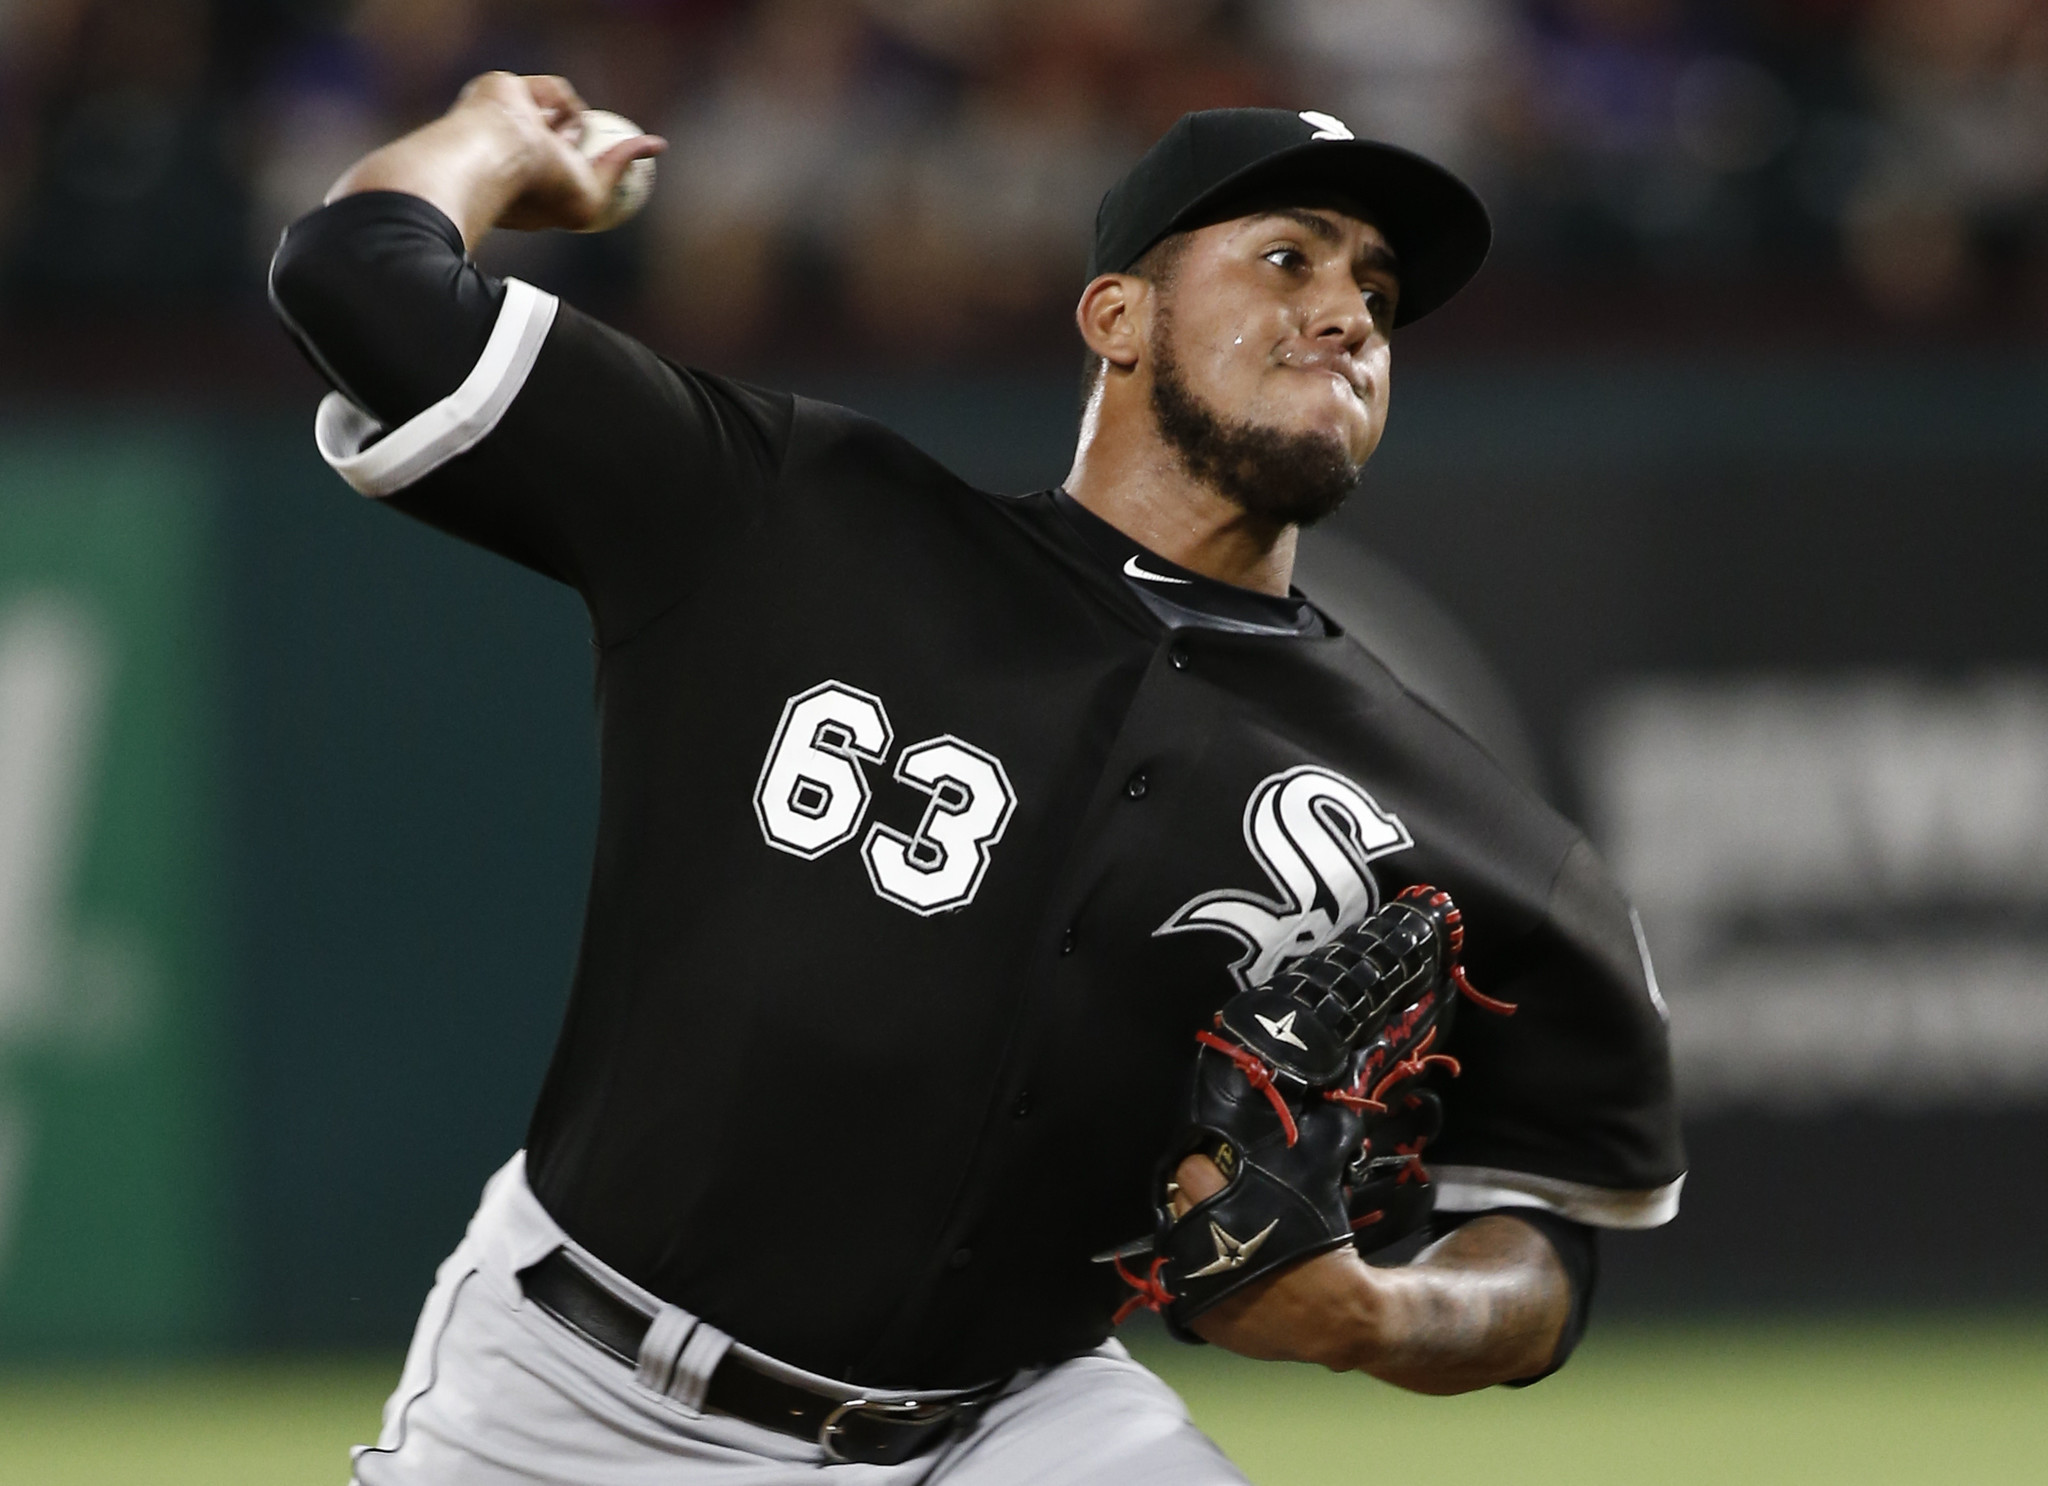 Ct-white-sox-notes-gregory-infante-first-win-spt-0824-20170823